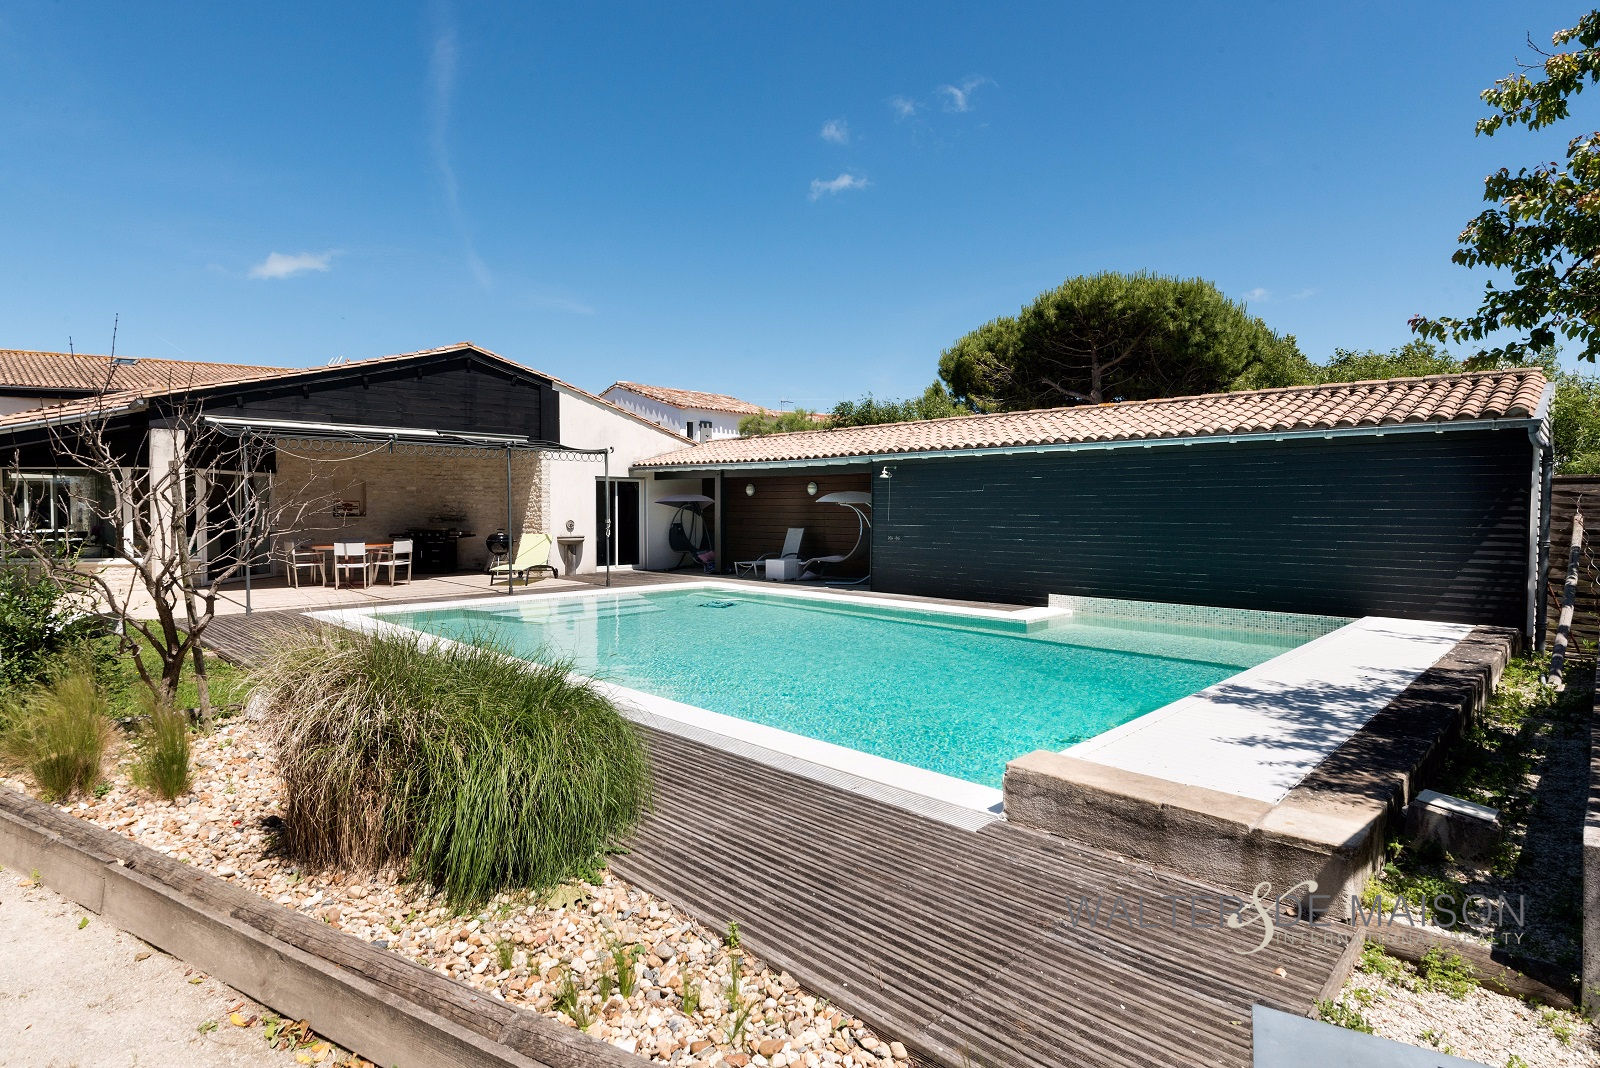 Photo Maison Saint-Martin-de-Ré 10 pièces - 445 m² - 5 chambres -  Piscine-Pool-house 1500 m² image 2/6